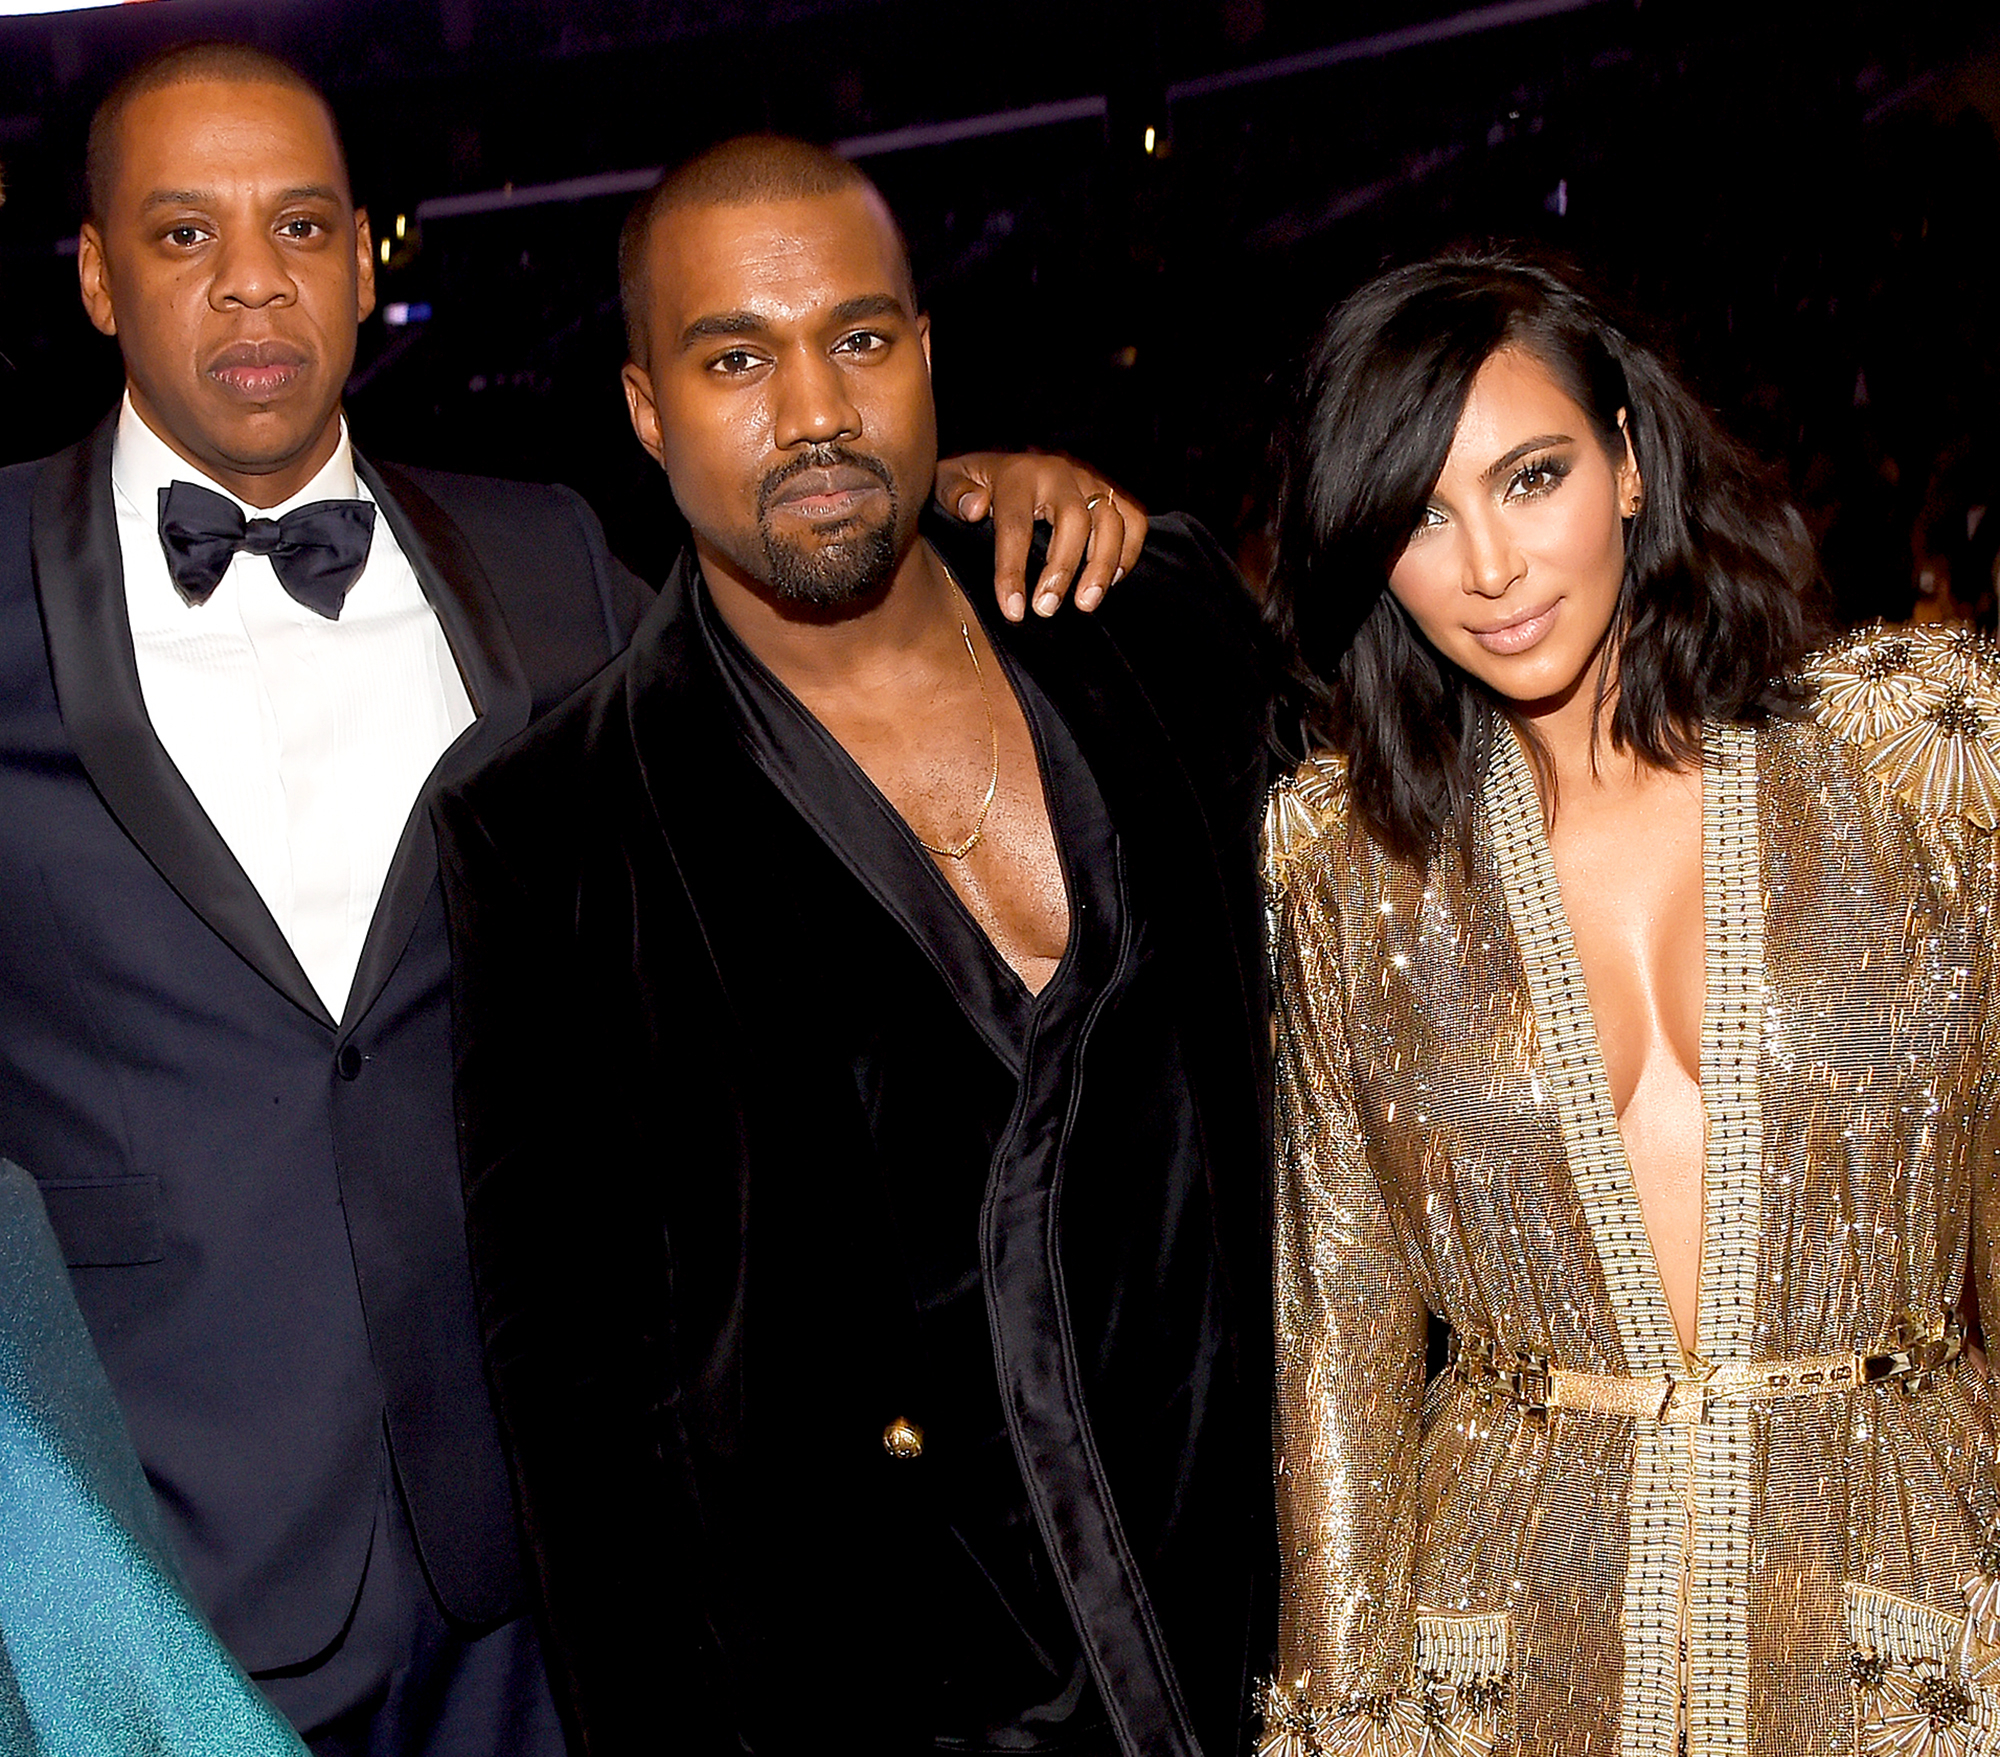 Jay Z, Kanye West and Kim Kardashian